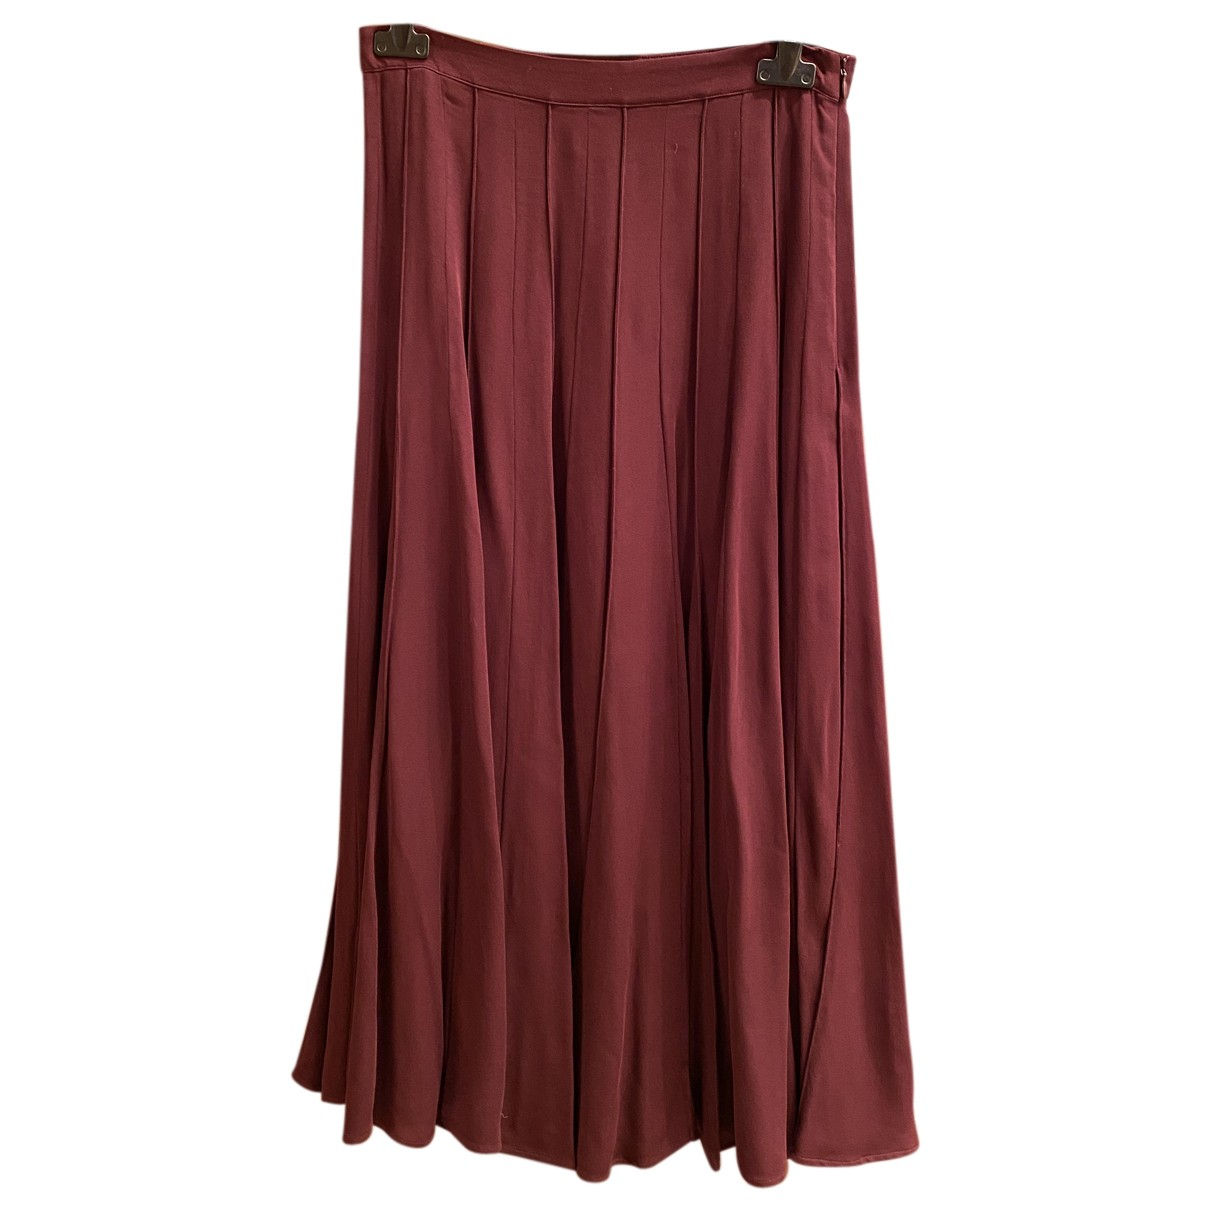 Massimo Dutti N Burgundy skirt for Women 36 FR